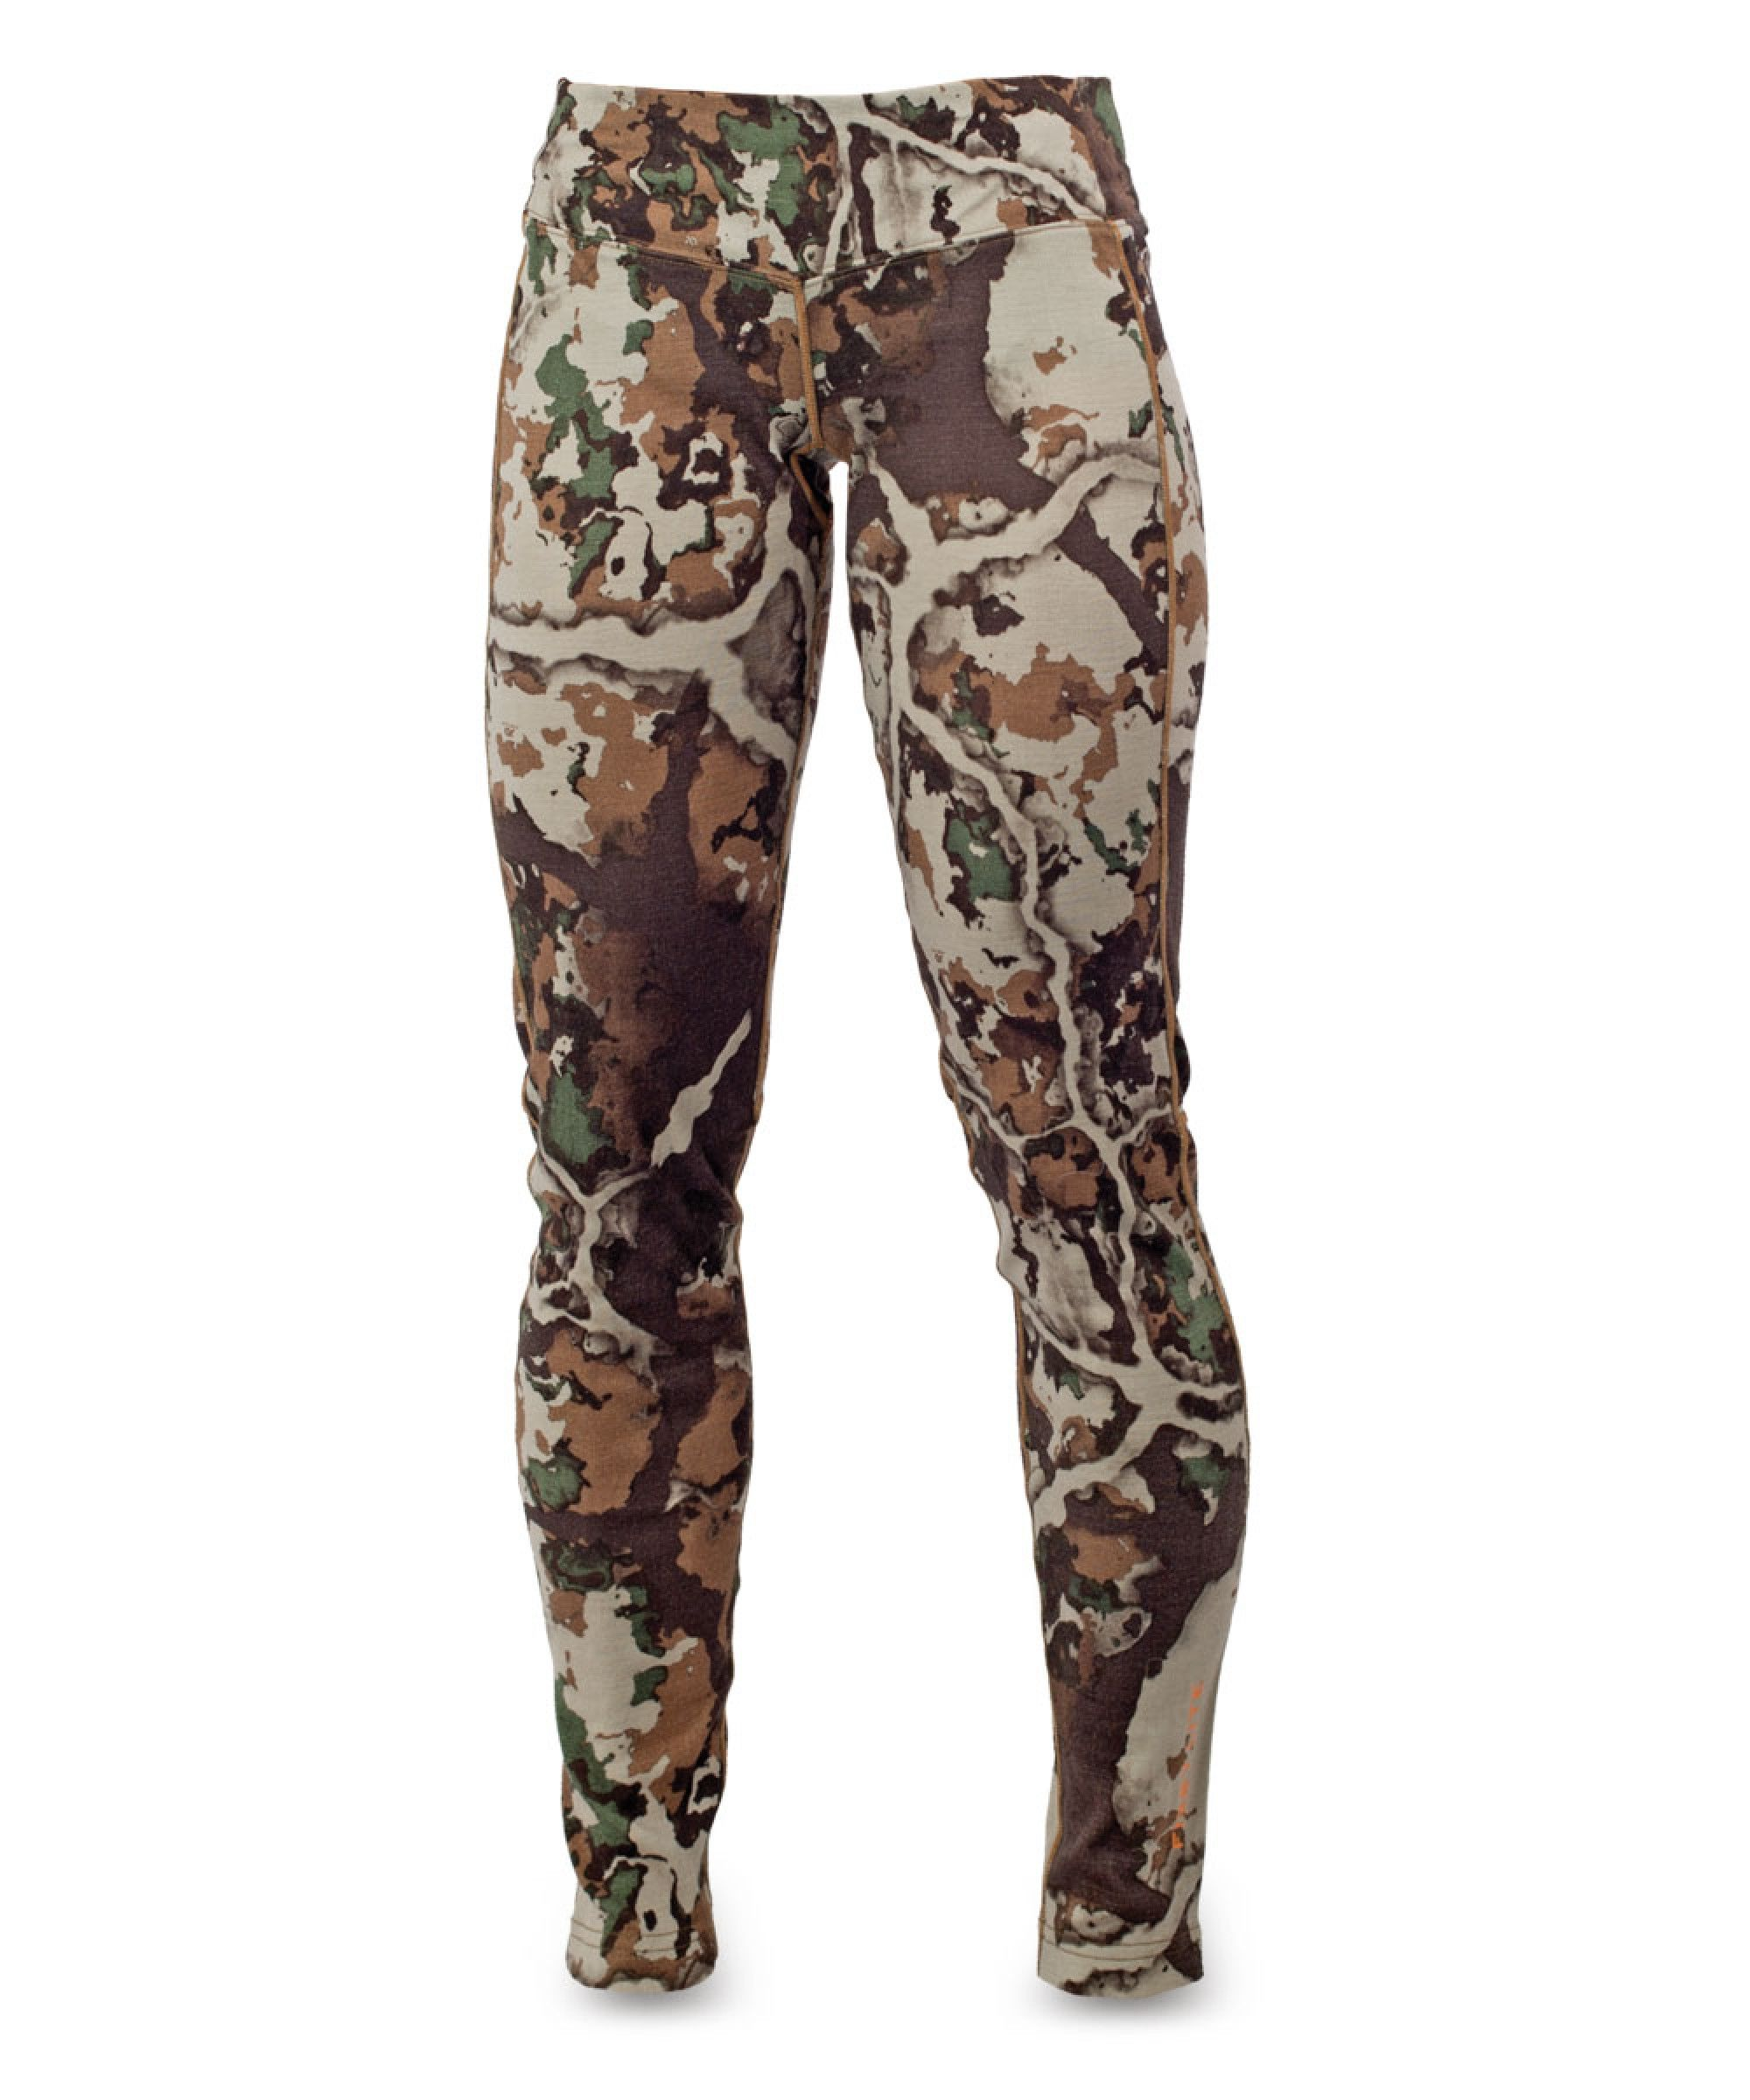 553bb331523bf8 Women's ScentBlocker® Sola™ Knock Out Camo Pants - 303685, Women's Hunting  Clothing at Sportsman's Guide